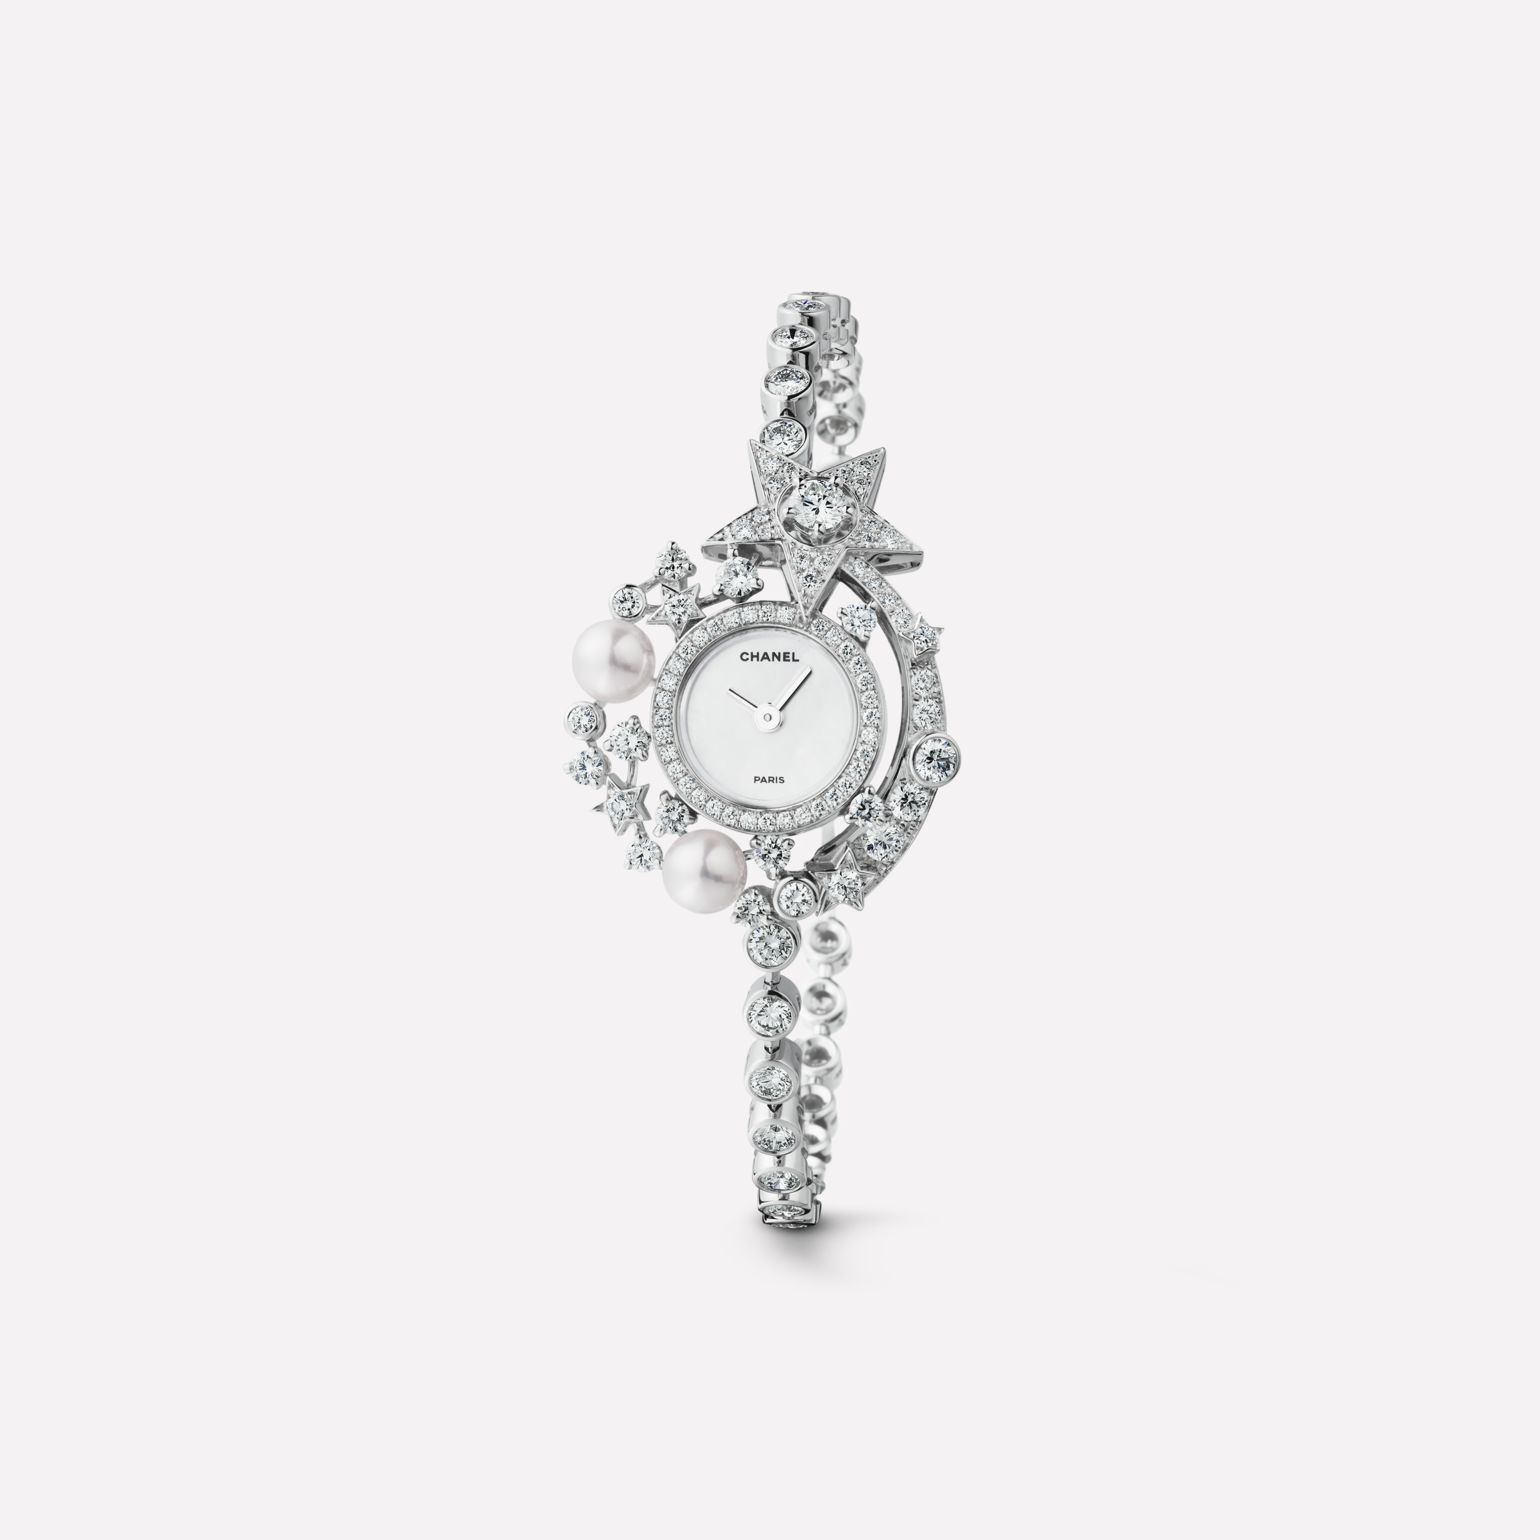 Comète Jewelry Watch Star motif in 18K white gold, diamonds, and cultured pearls